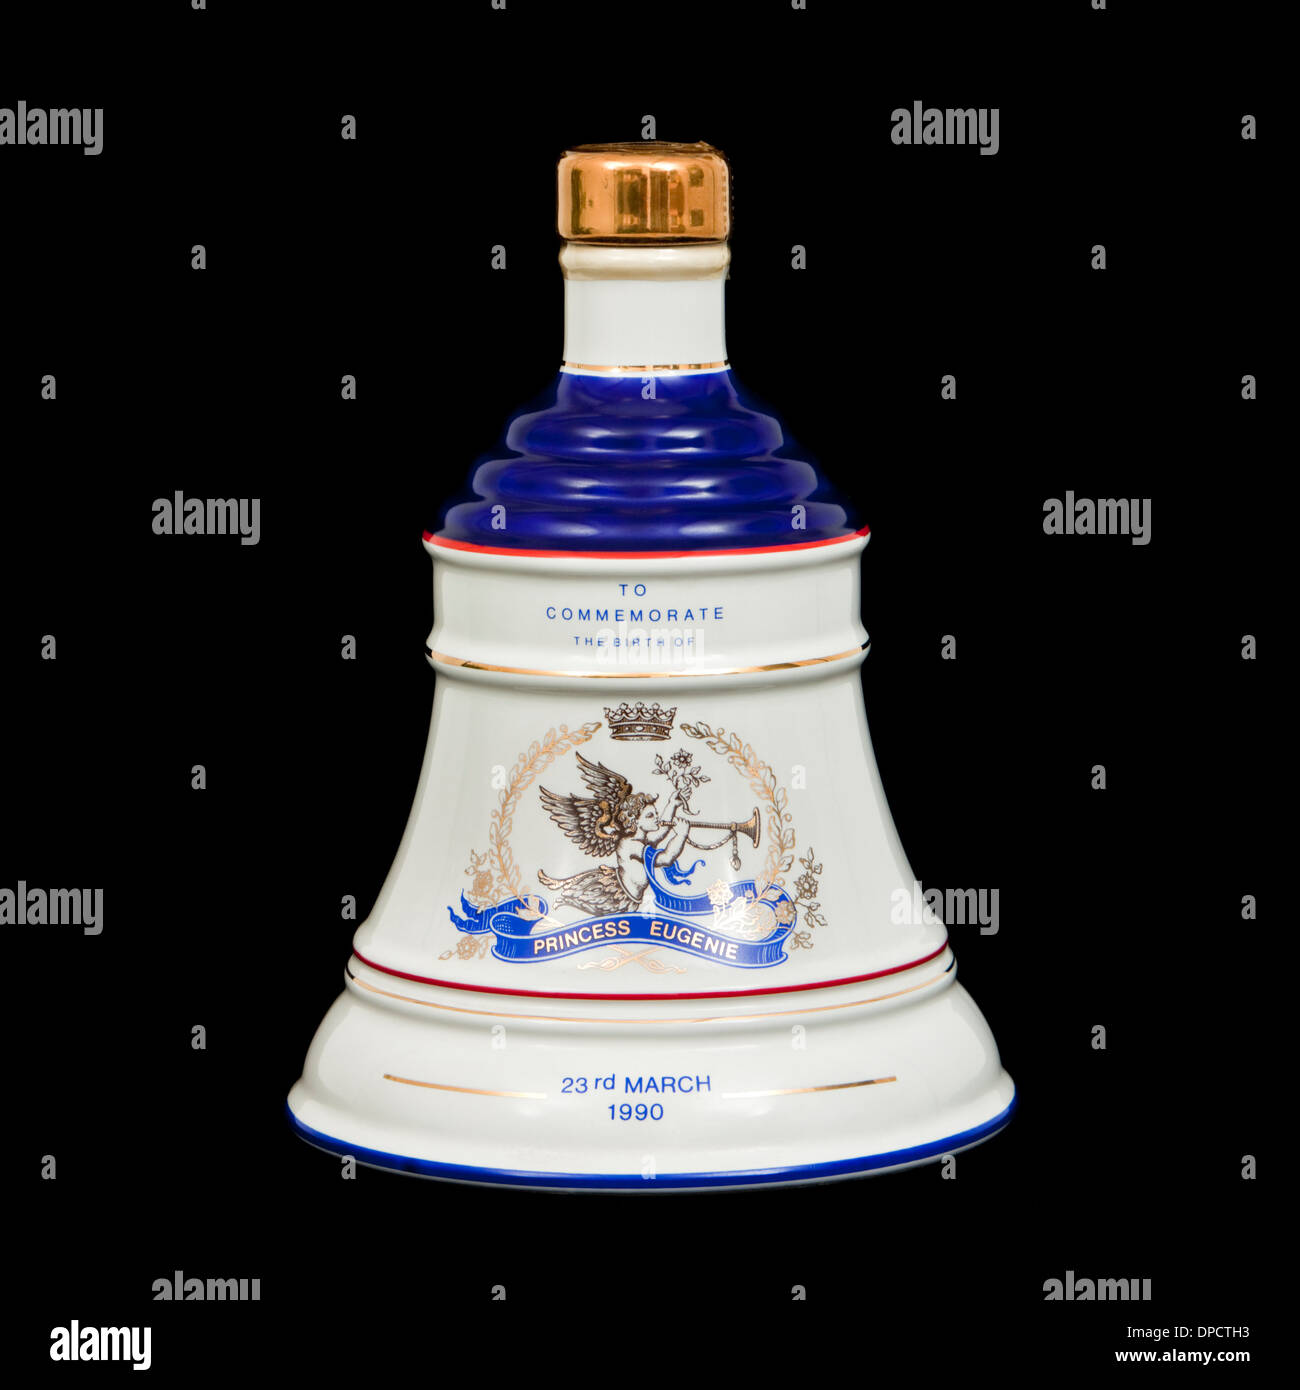 Bell's Old Scotch Whisky - porcelain Royal Decanter made by Wade, commemorating the Birth of Princess Eugenie (23rd March 1990) - Stock Image